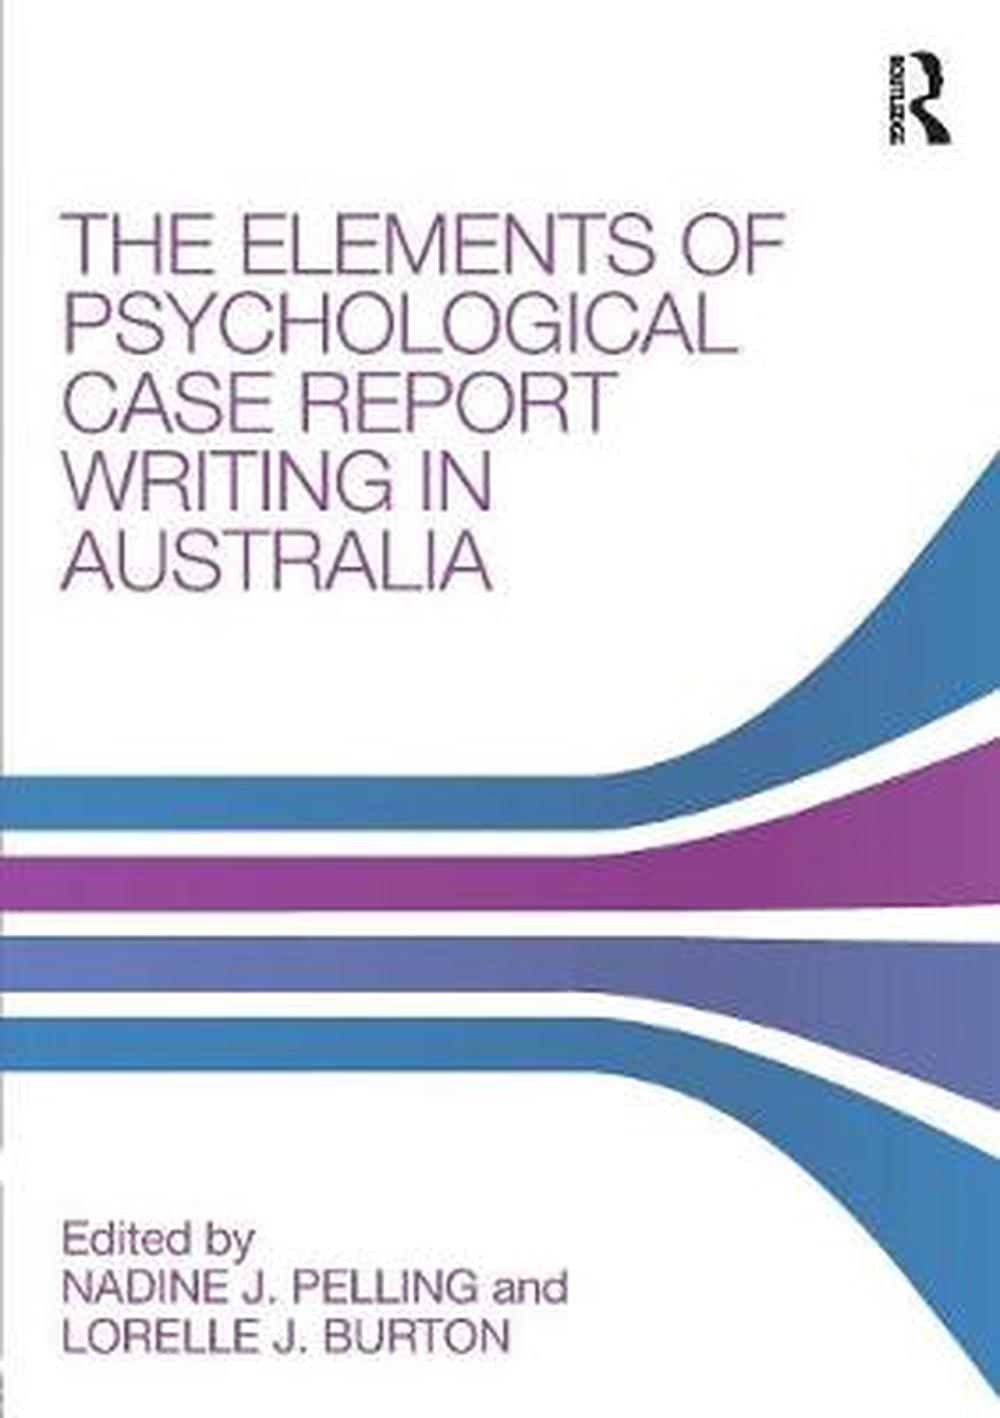 The Elements of Psychological Case Report Writing in Australia by Nadine J. Pelling, ISBN: 9780815367185